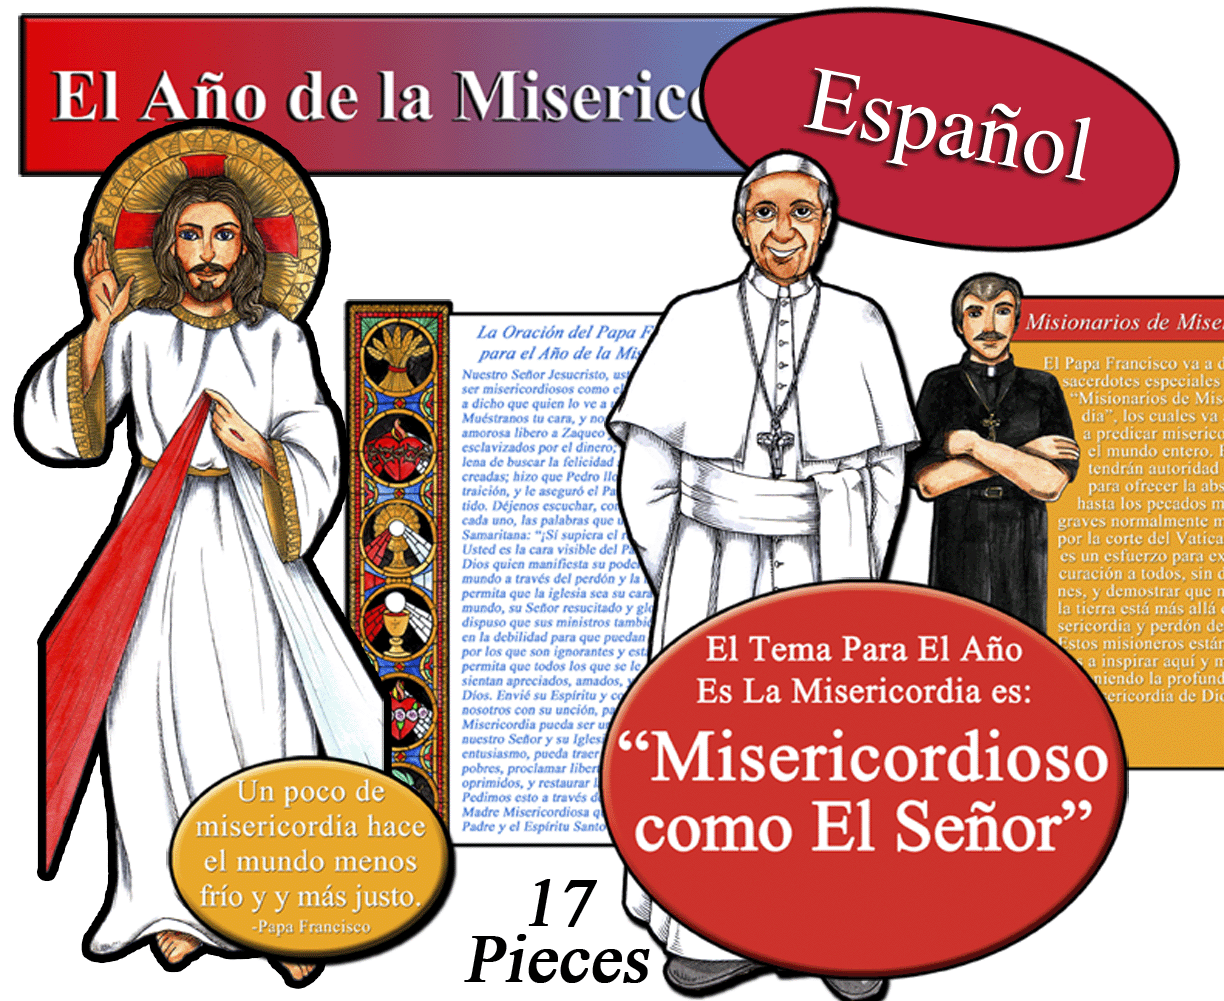 Spanish - Year of Mercy